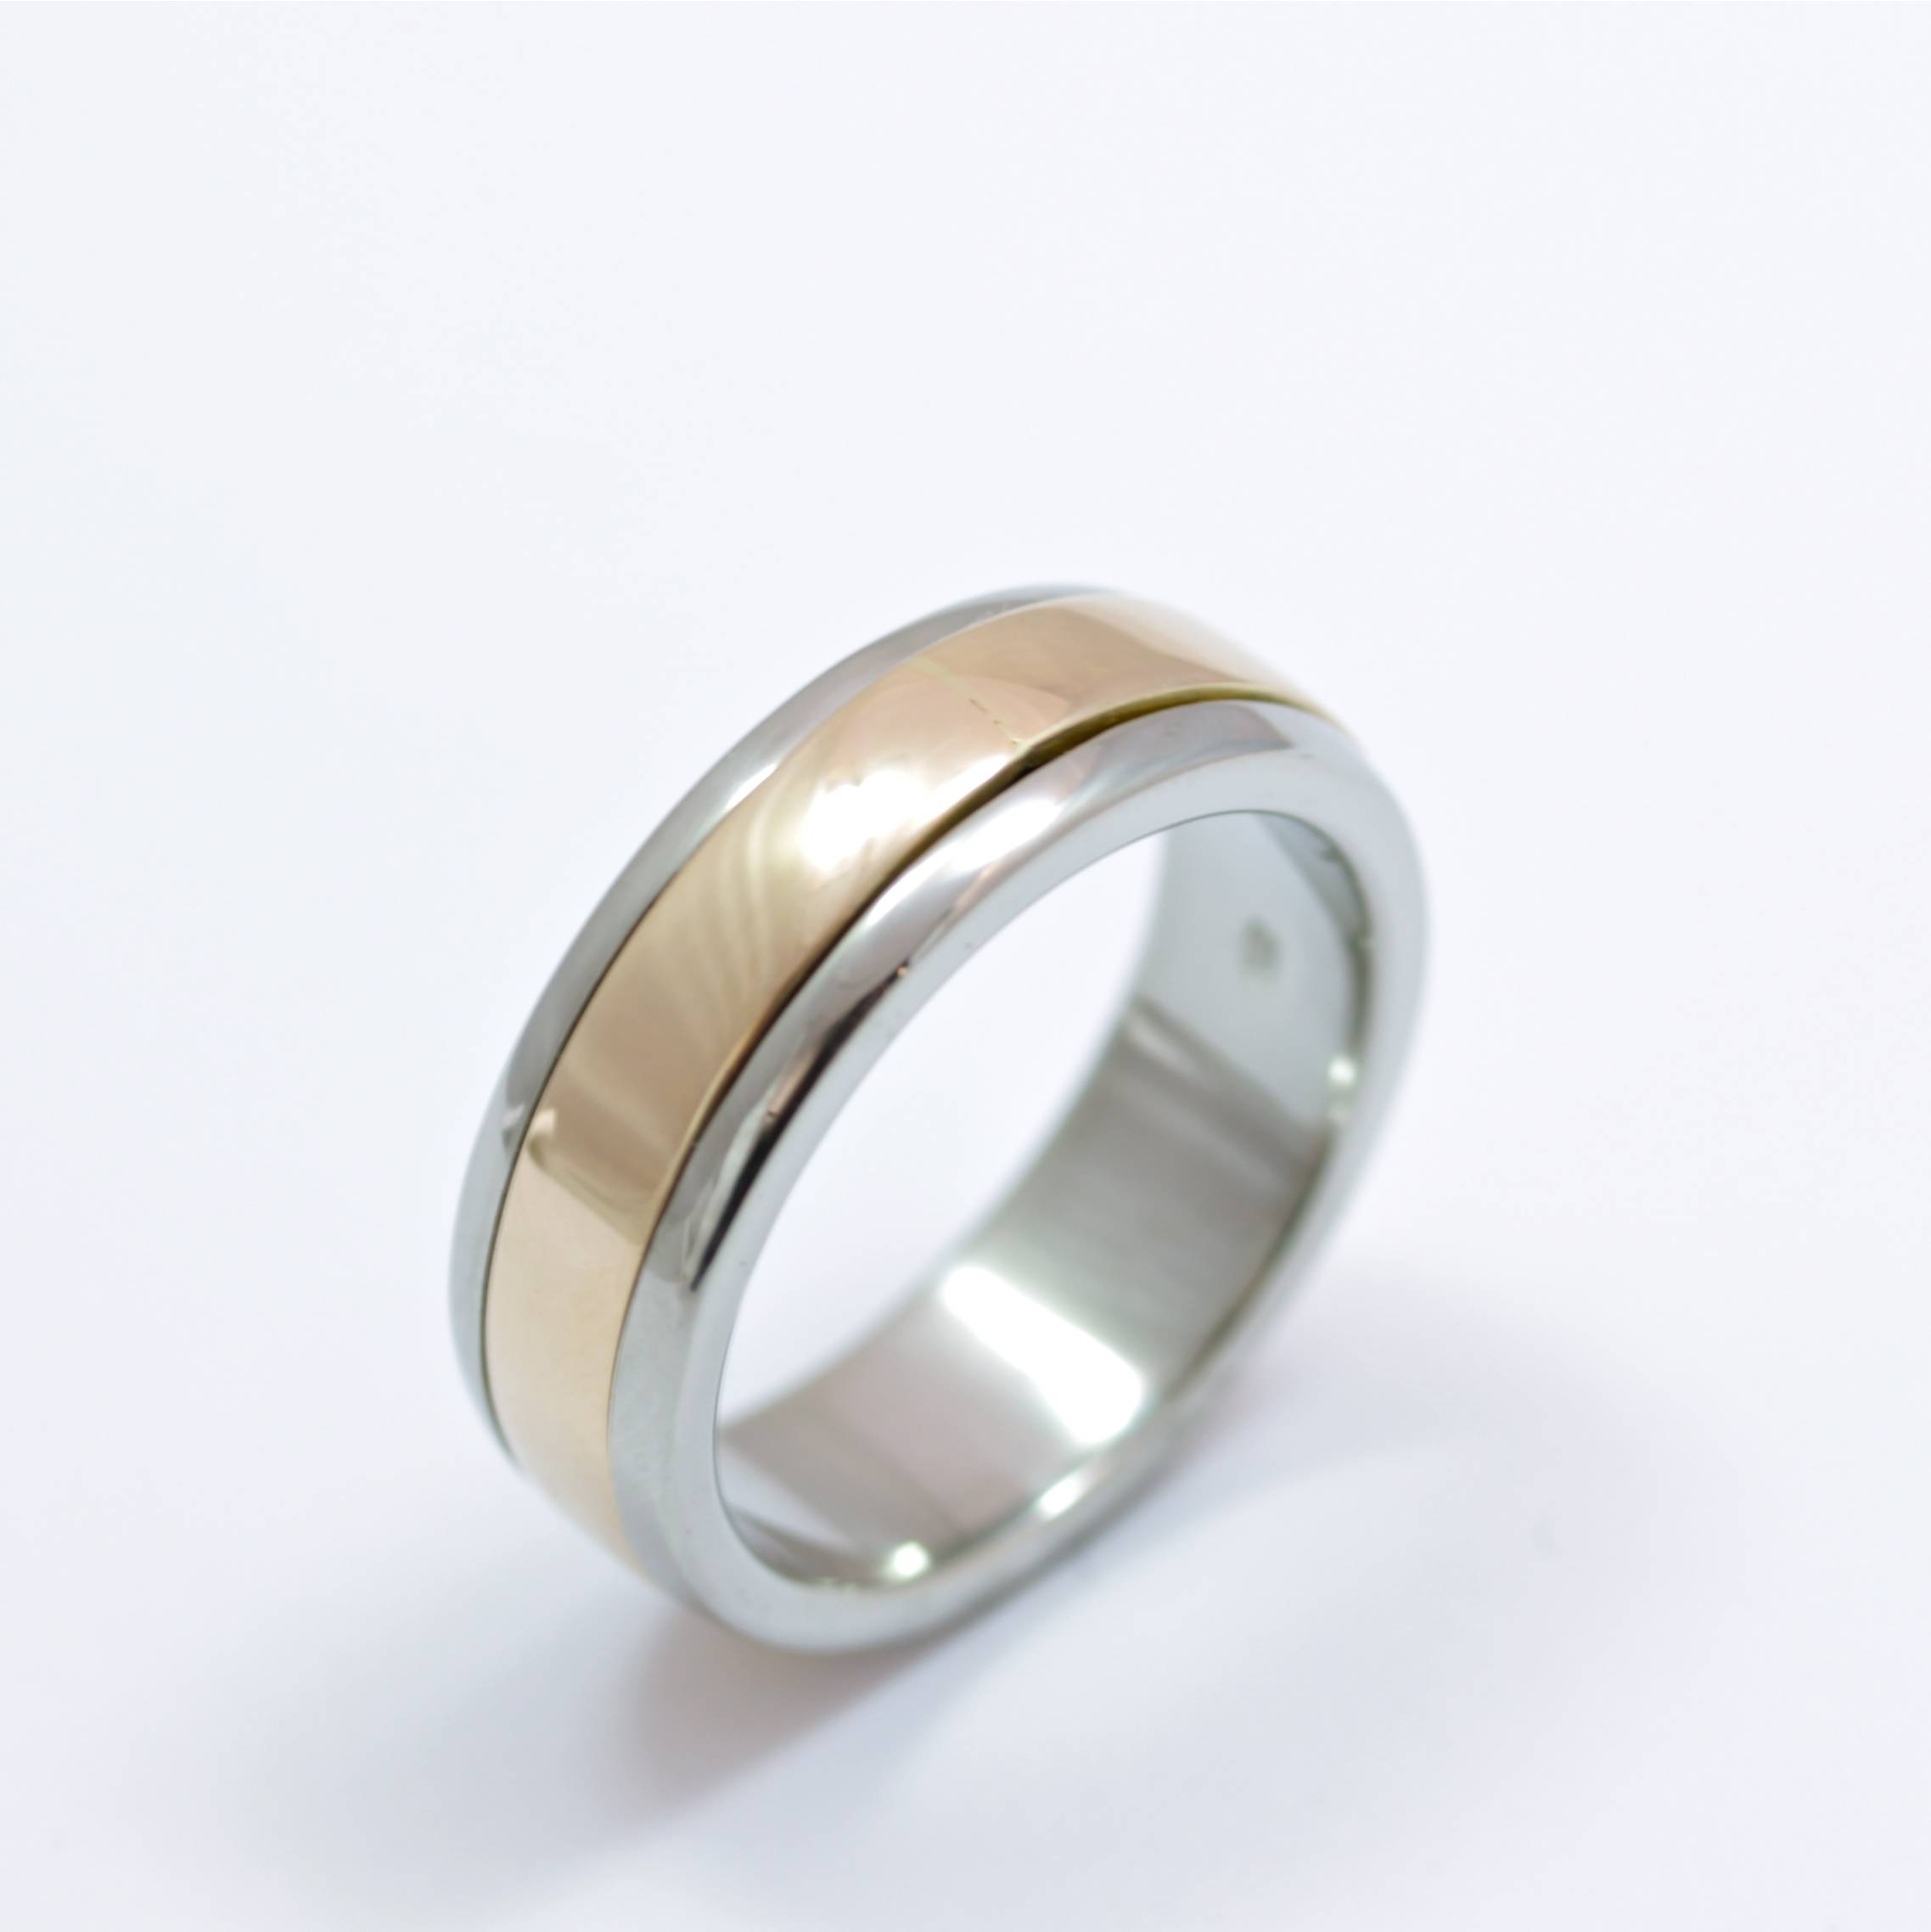 Palladium And 9Ct Rose Gold Men's Wedding Ring Intended For Mens Palladium Wedding Rings (View 11 of 15)